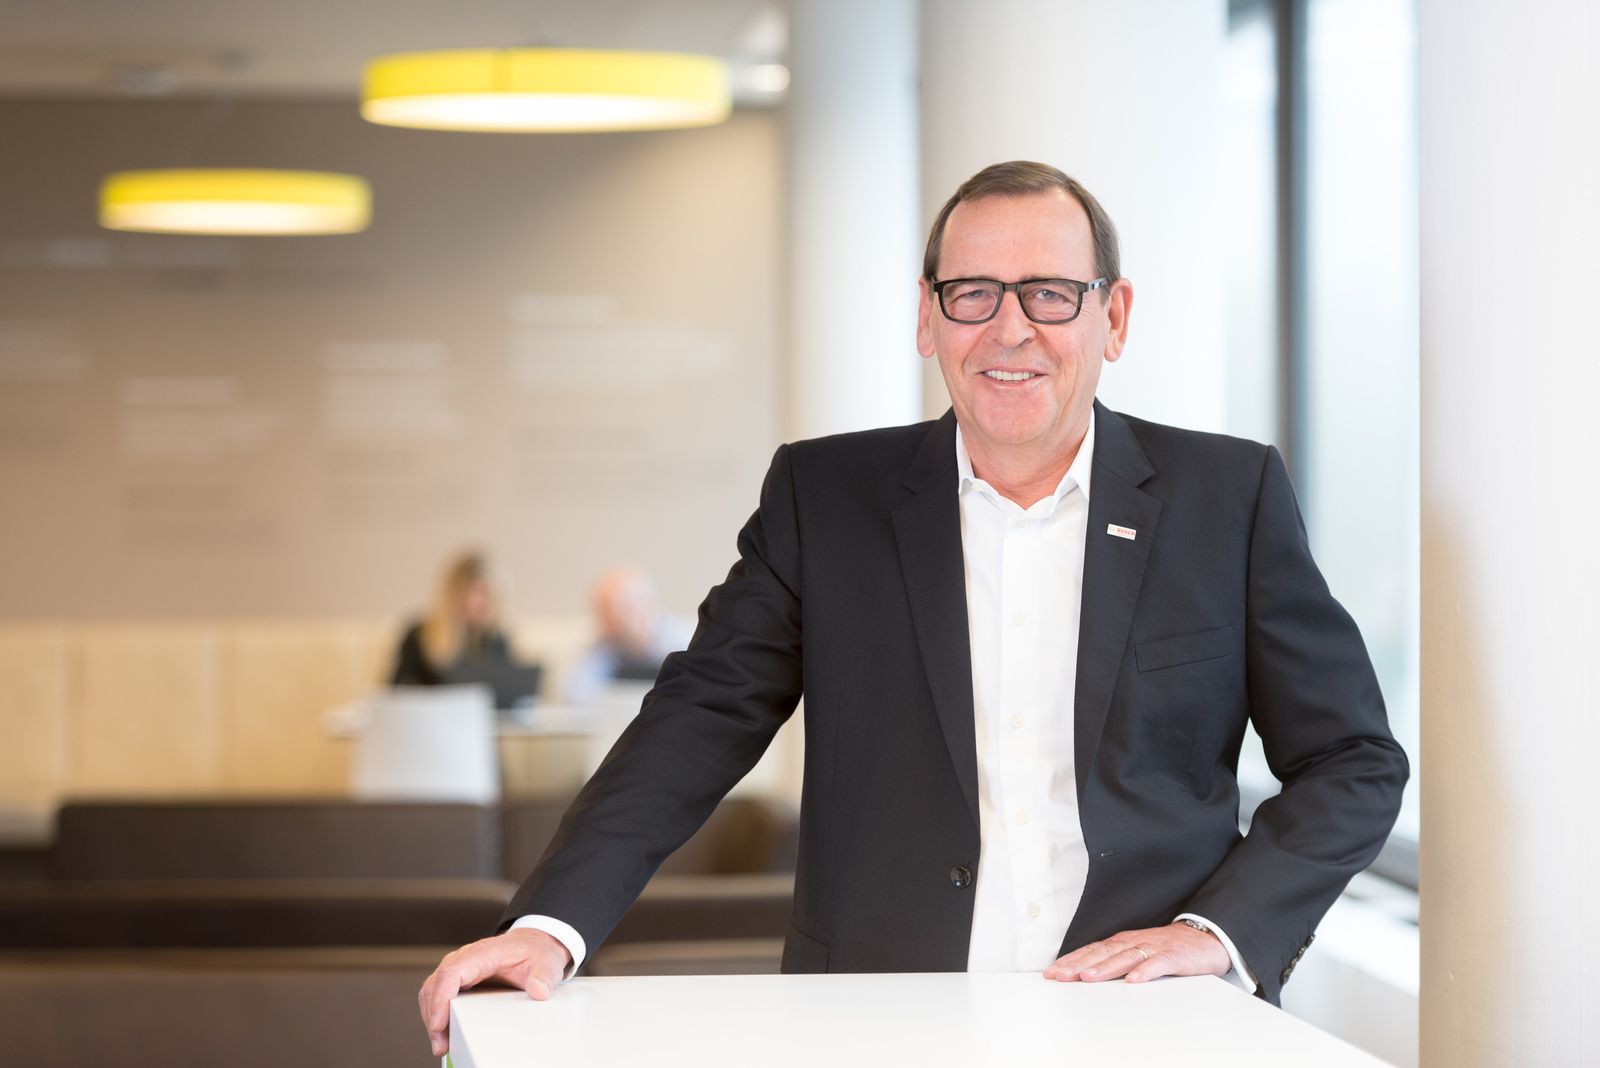 Peter Tyroller, the member of the Bosch board of management responsible for Asia Pacific